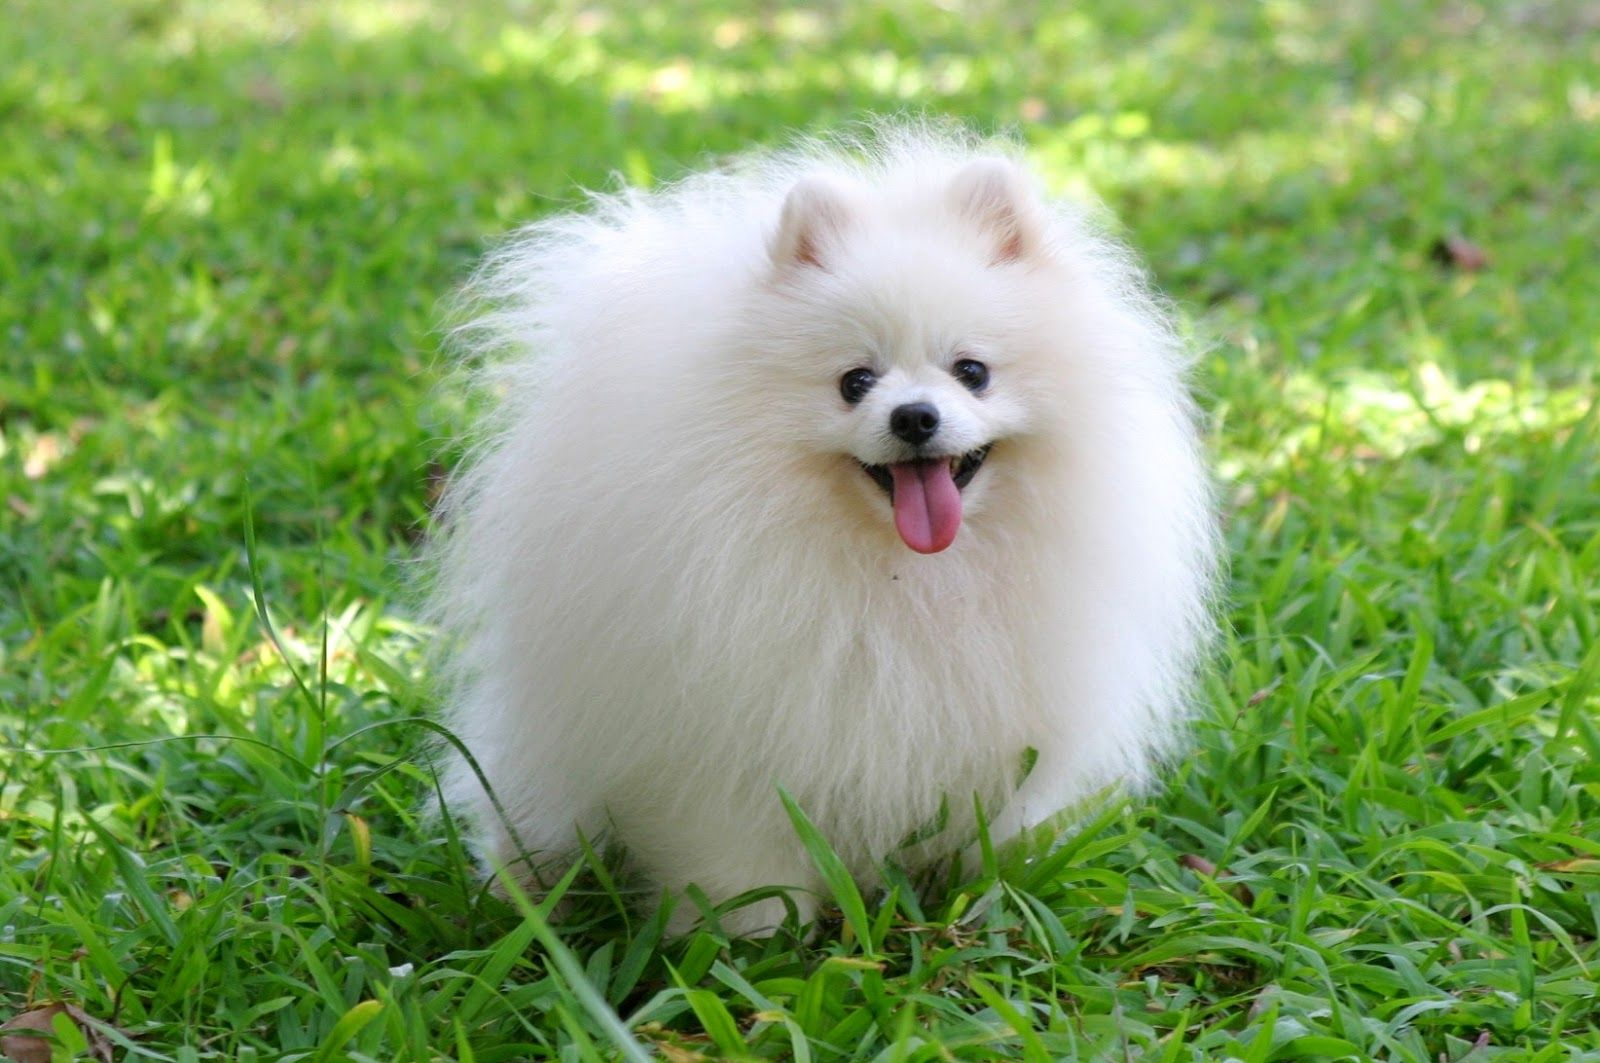 The Pomeranian Is A Small Toy Sized Dog That Is Fast Becoming A